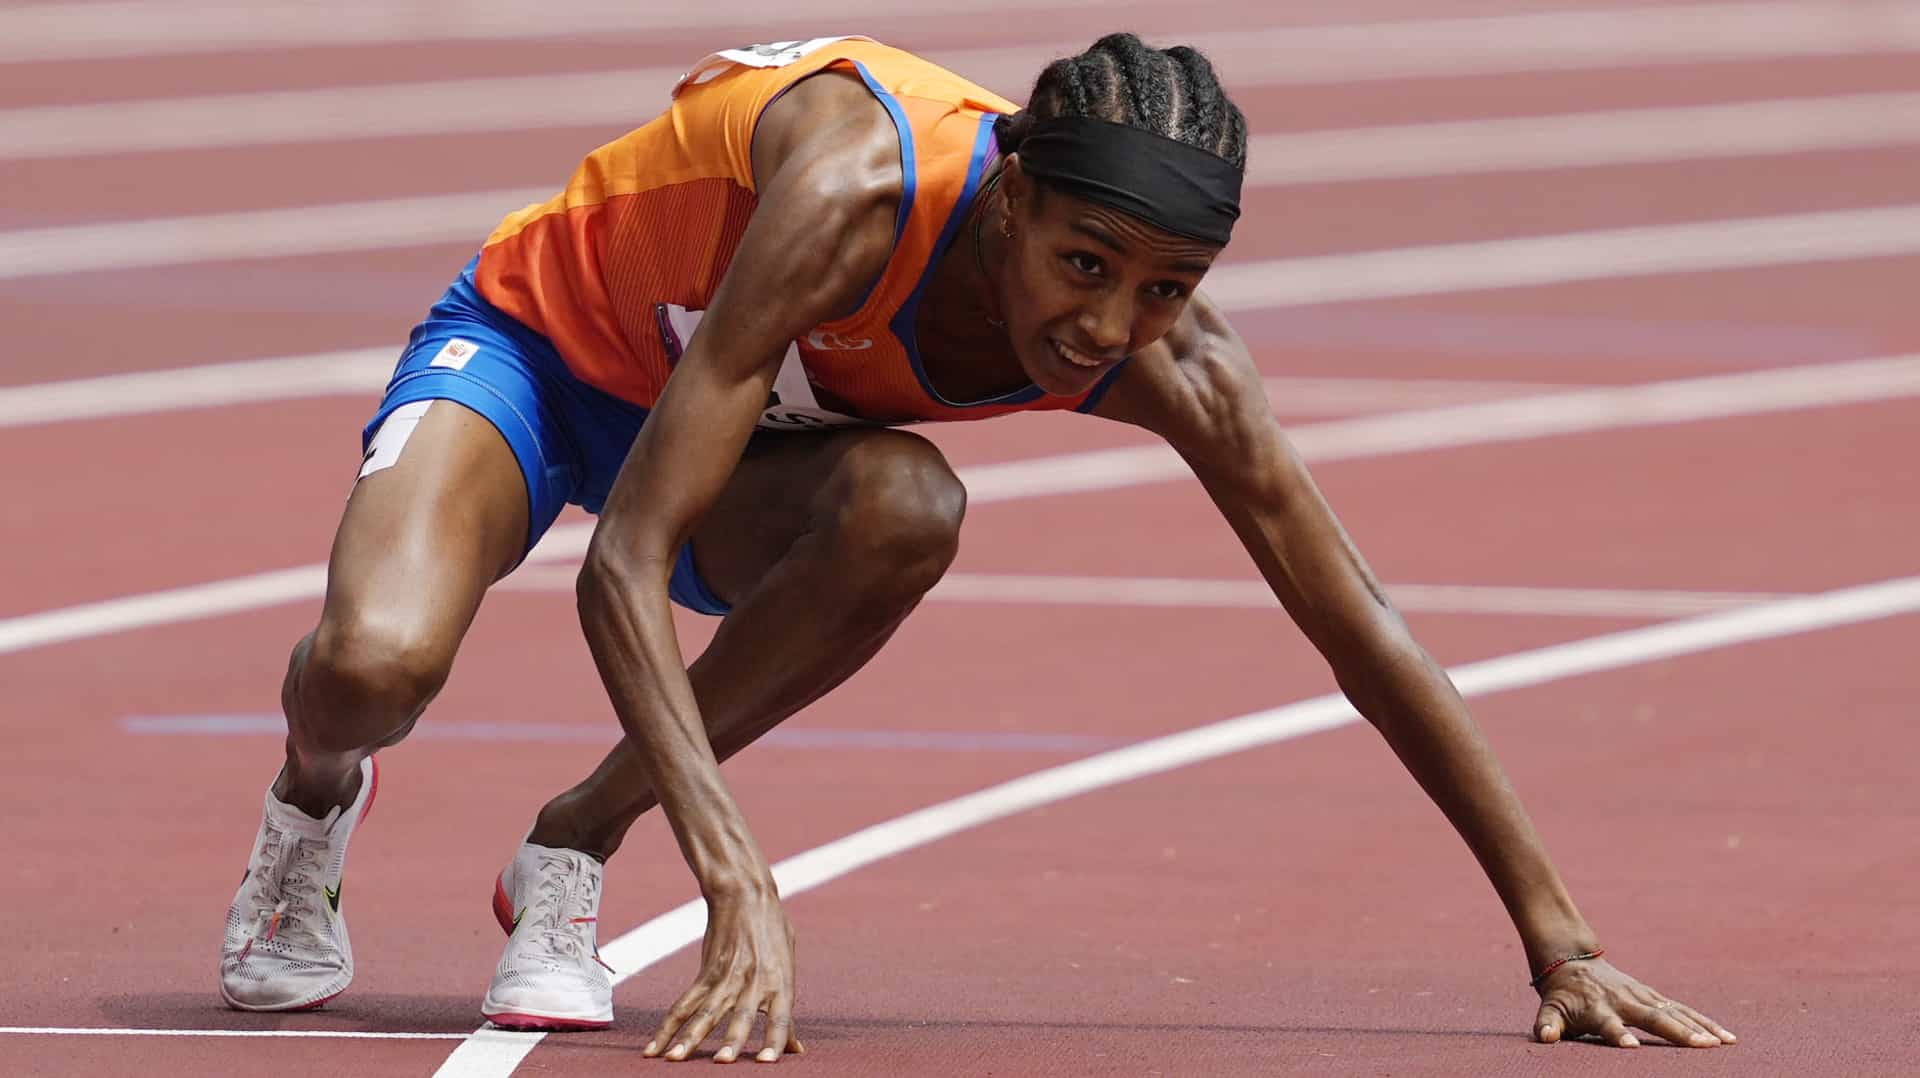 Sifan Hassan gets up after falling to the track in the women's 1500m preliminaries Monday at...